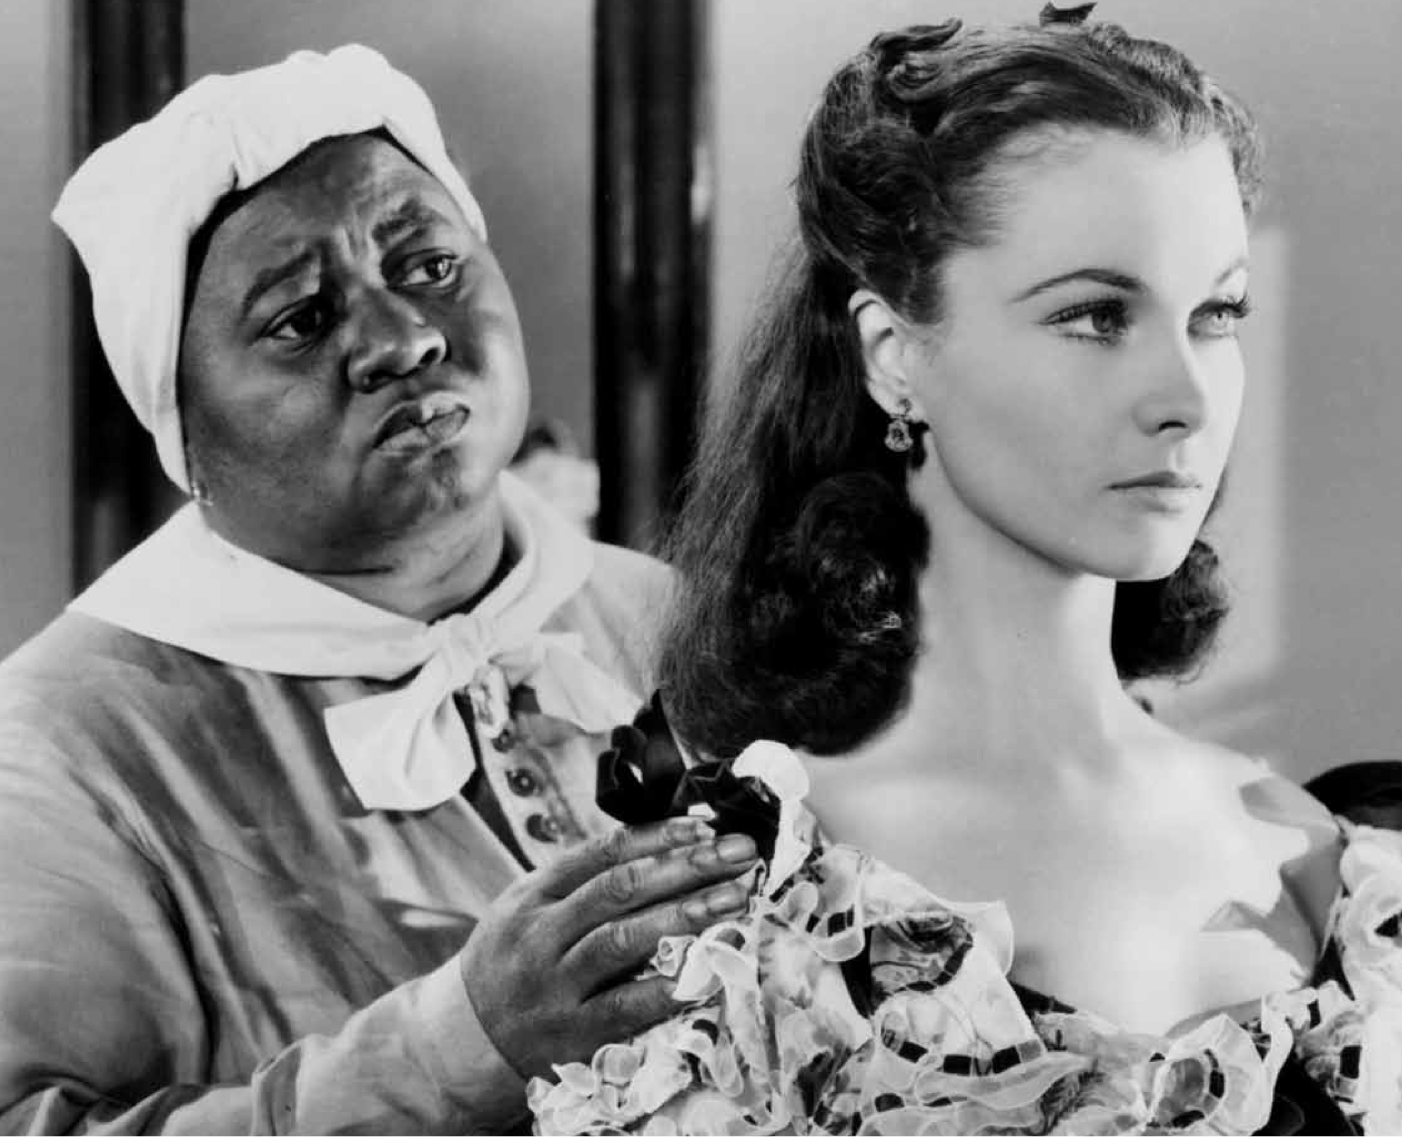 gone with the wind and feminism In more detail, feminism in gone with the wind is depicted through not only the female characters, especially scarlett o'hara and melanie hamilton, but also the vaguely respectful attitude of 1930s atlanta society towards women.